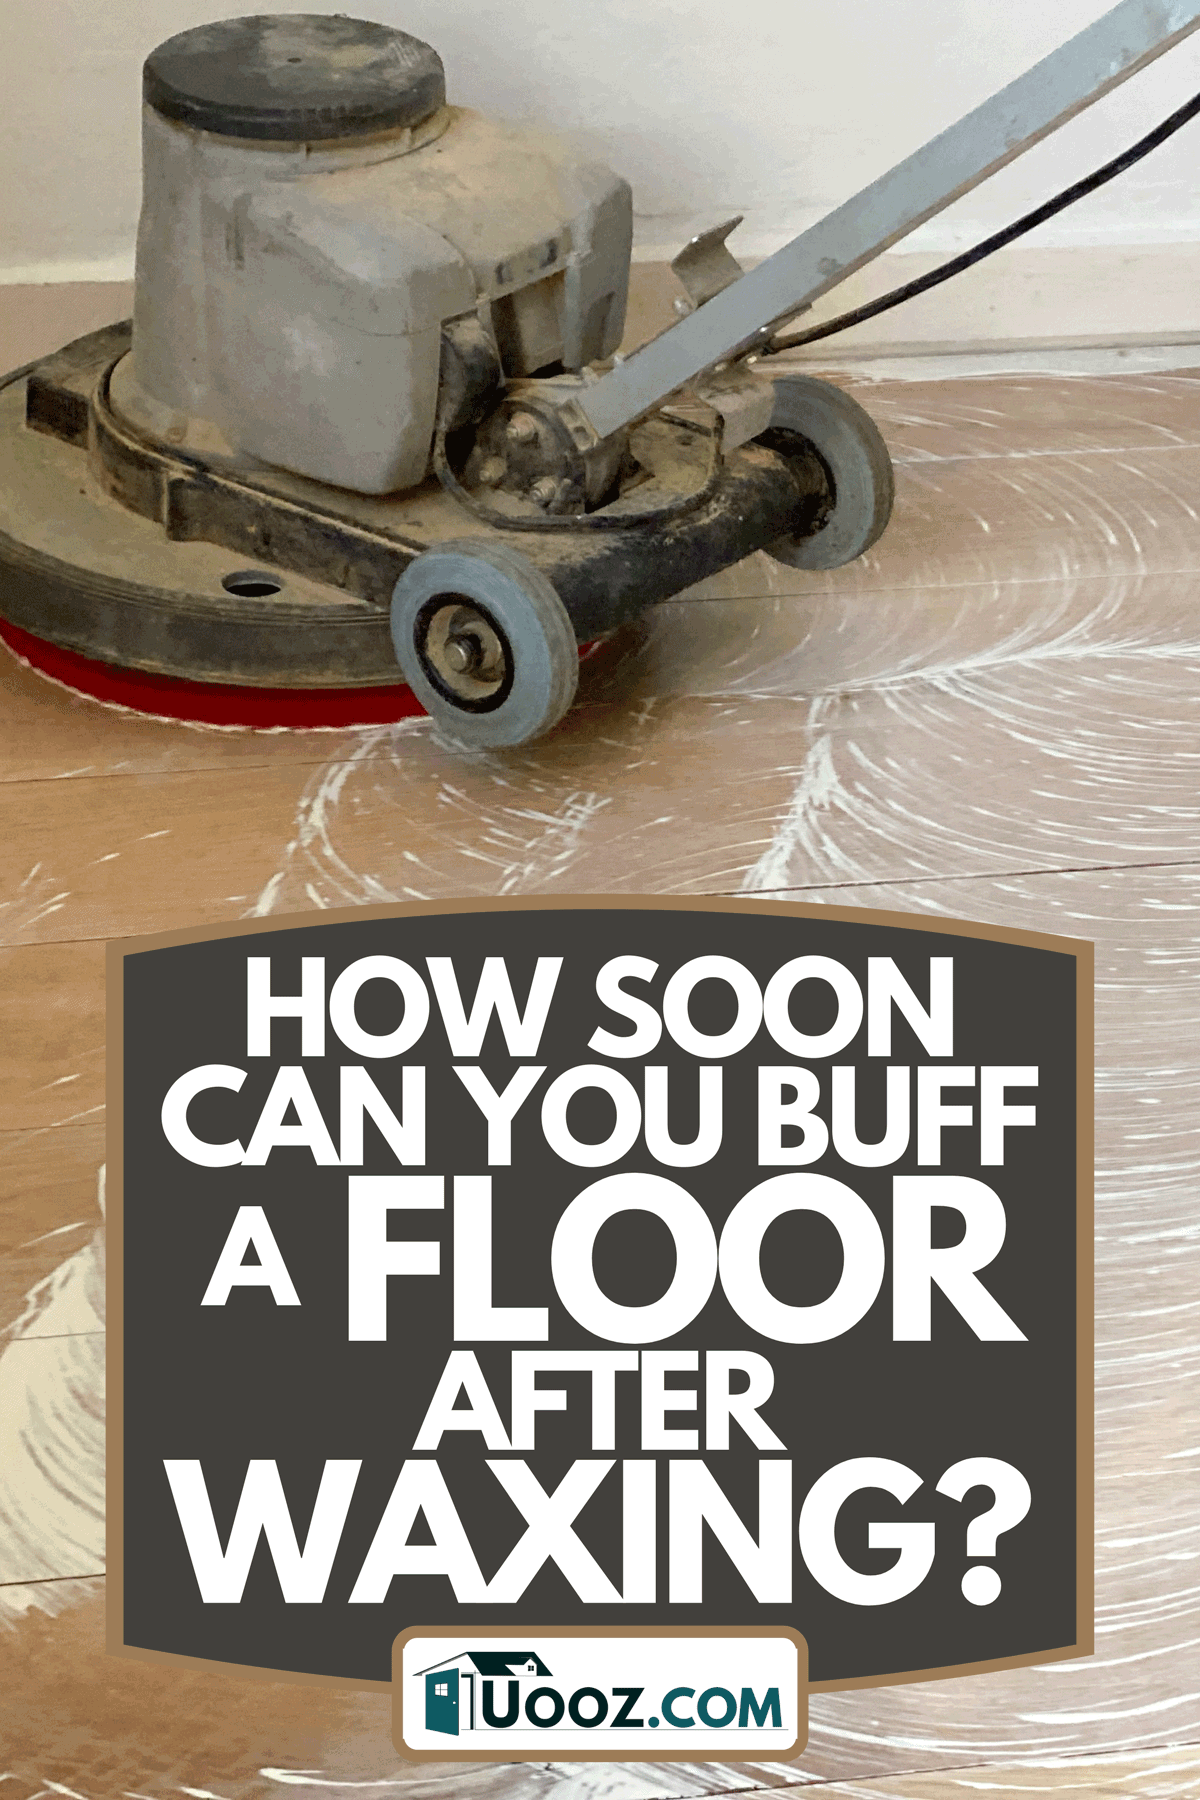 A worker cleaning and buffing floor, How Soon Can You Buff A Floor After Waxing?